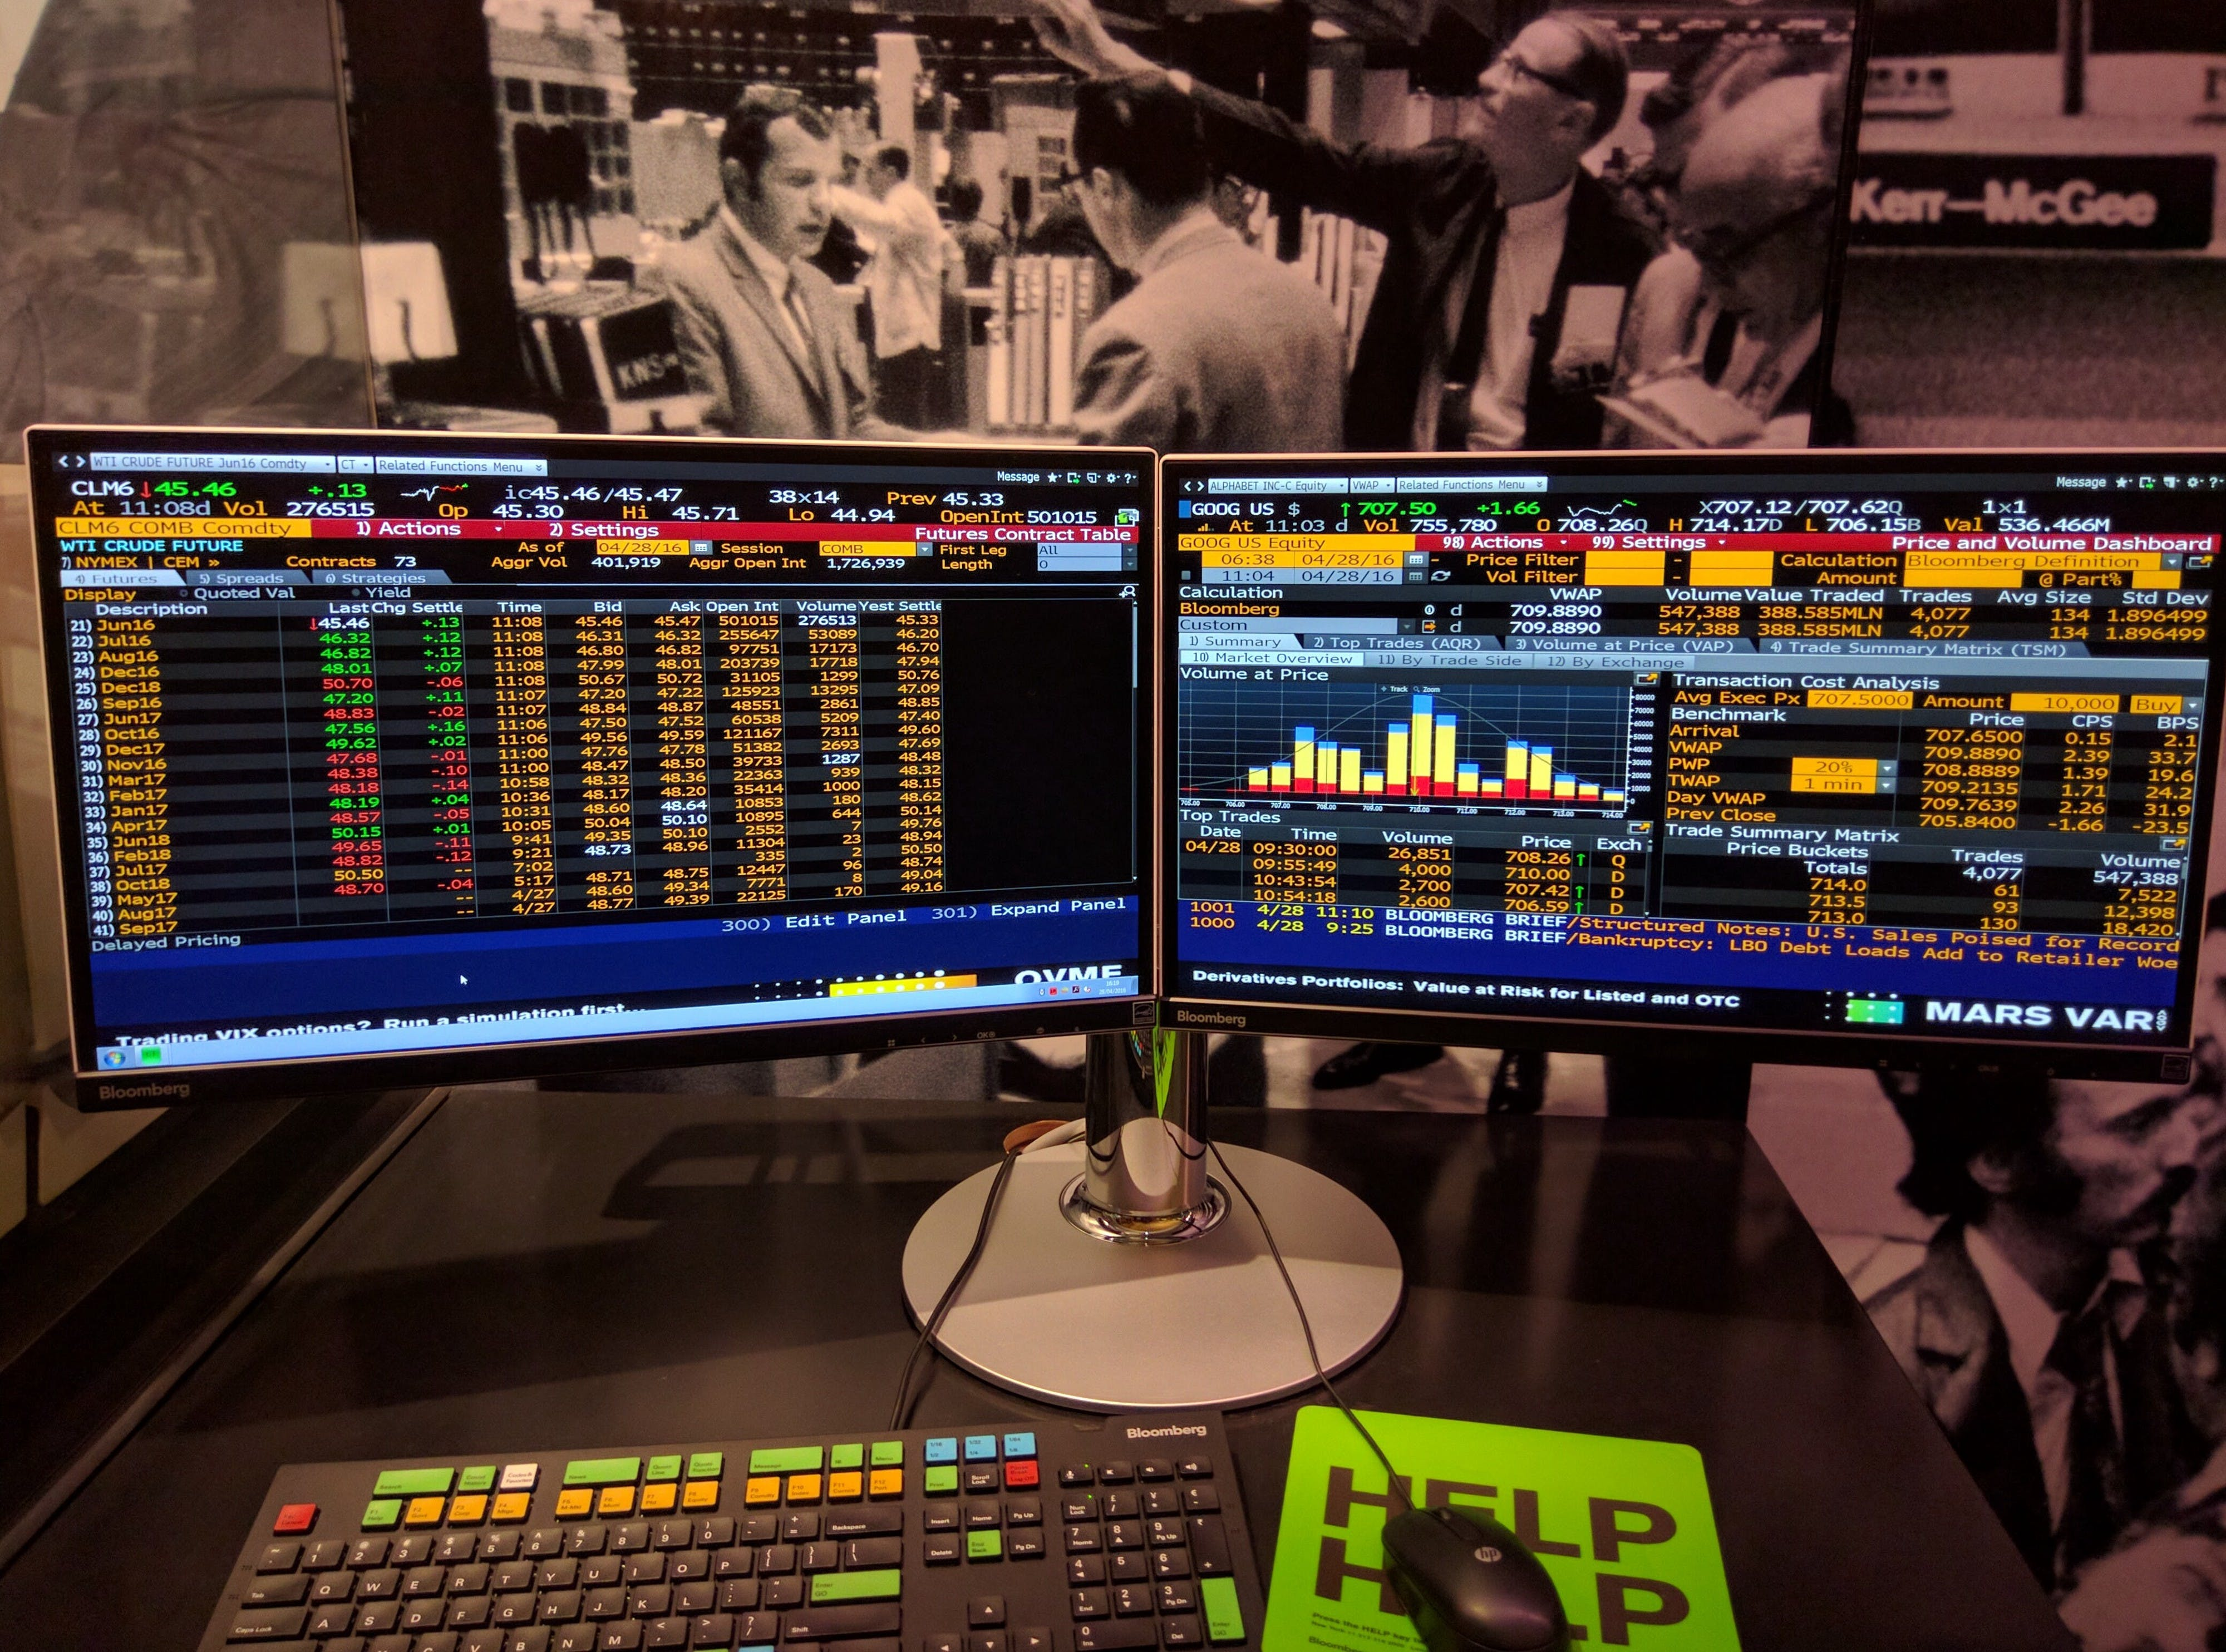 TEACHING DERIVATIVES USING BLOOMBERG: AN EXPERIENTIAL LEARNING APPROACH